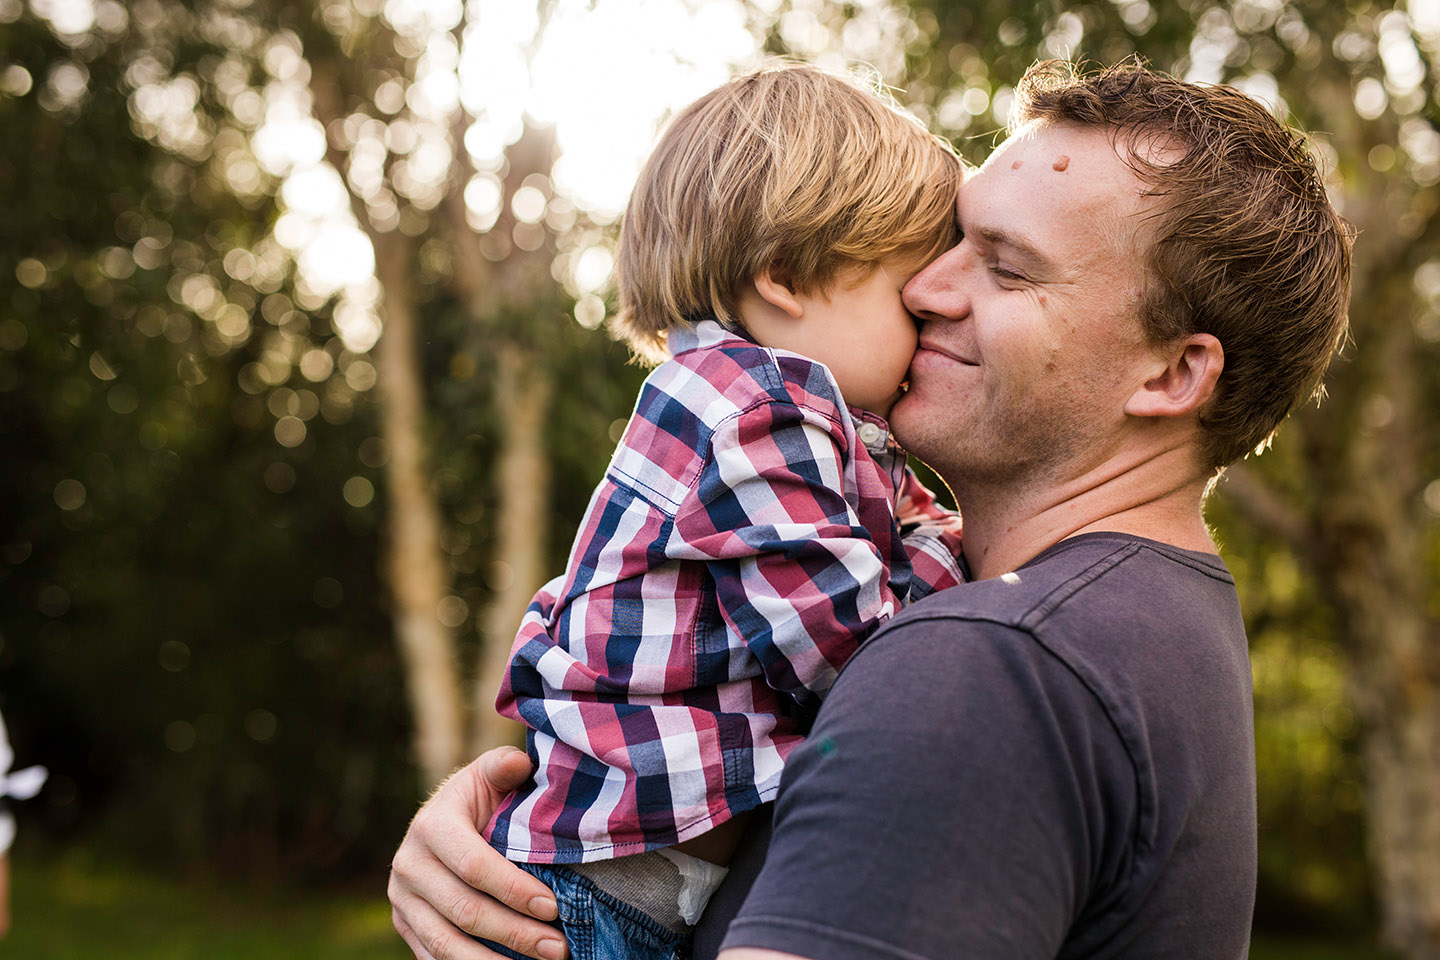 Father and son, childhodod, family photography, afternoon light, Alice Payne photography, mid north coast photographer